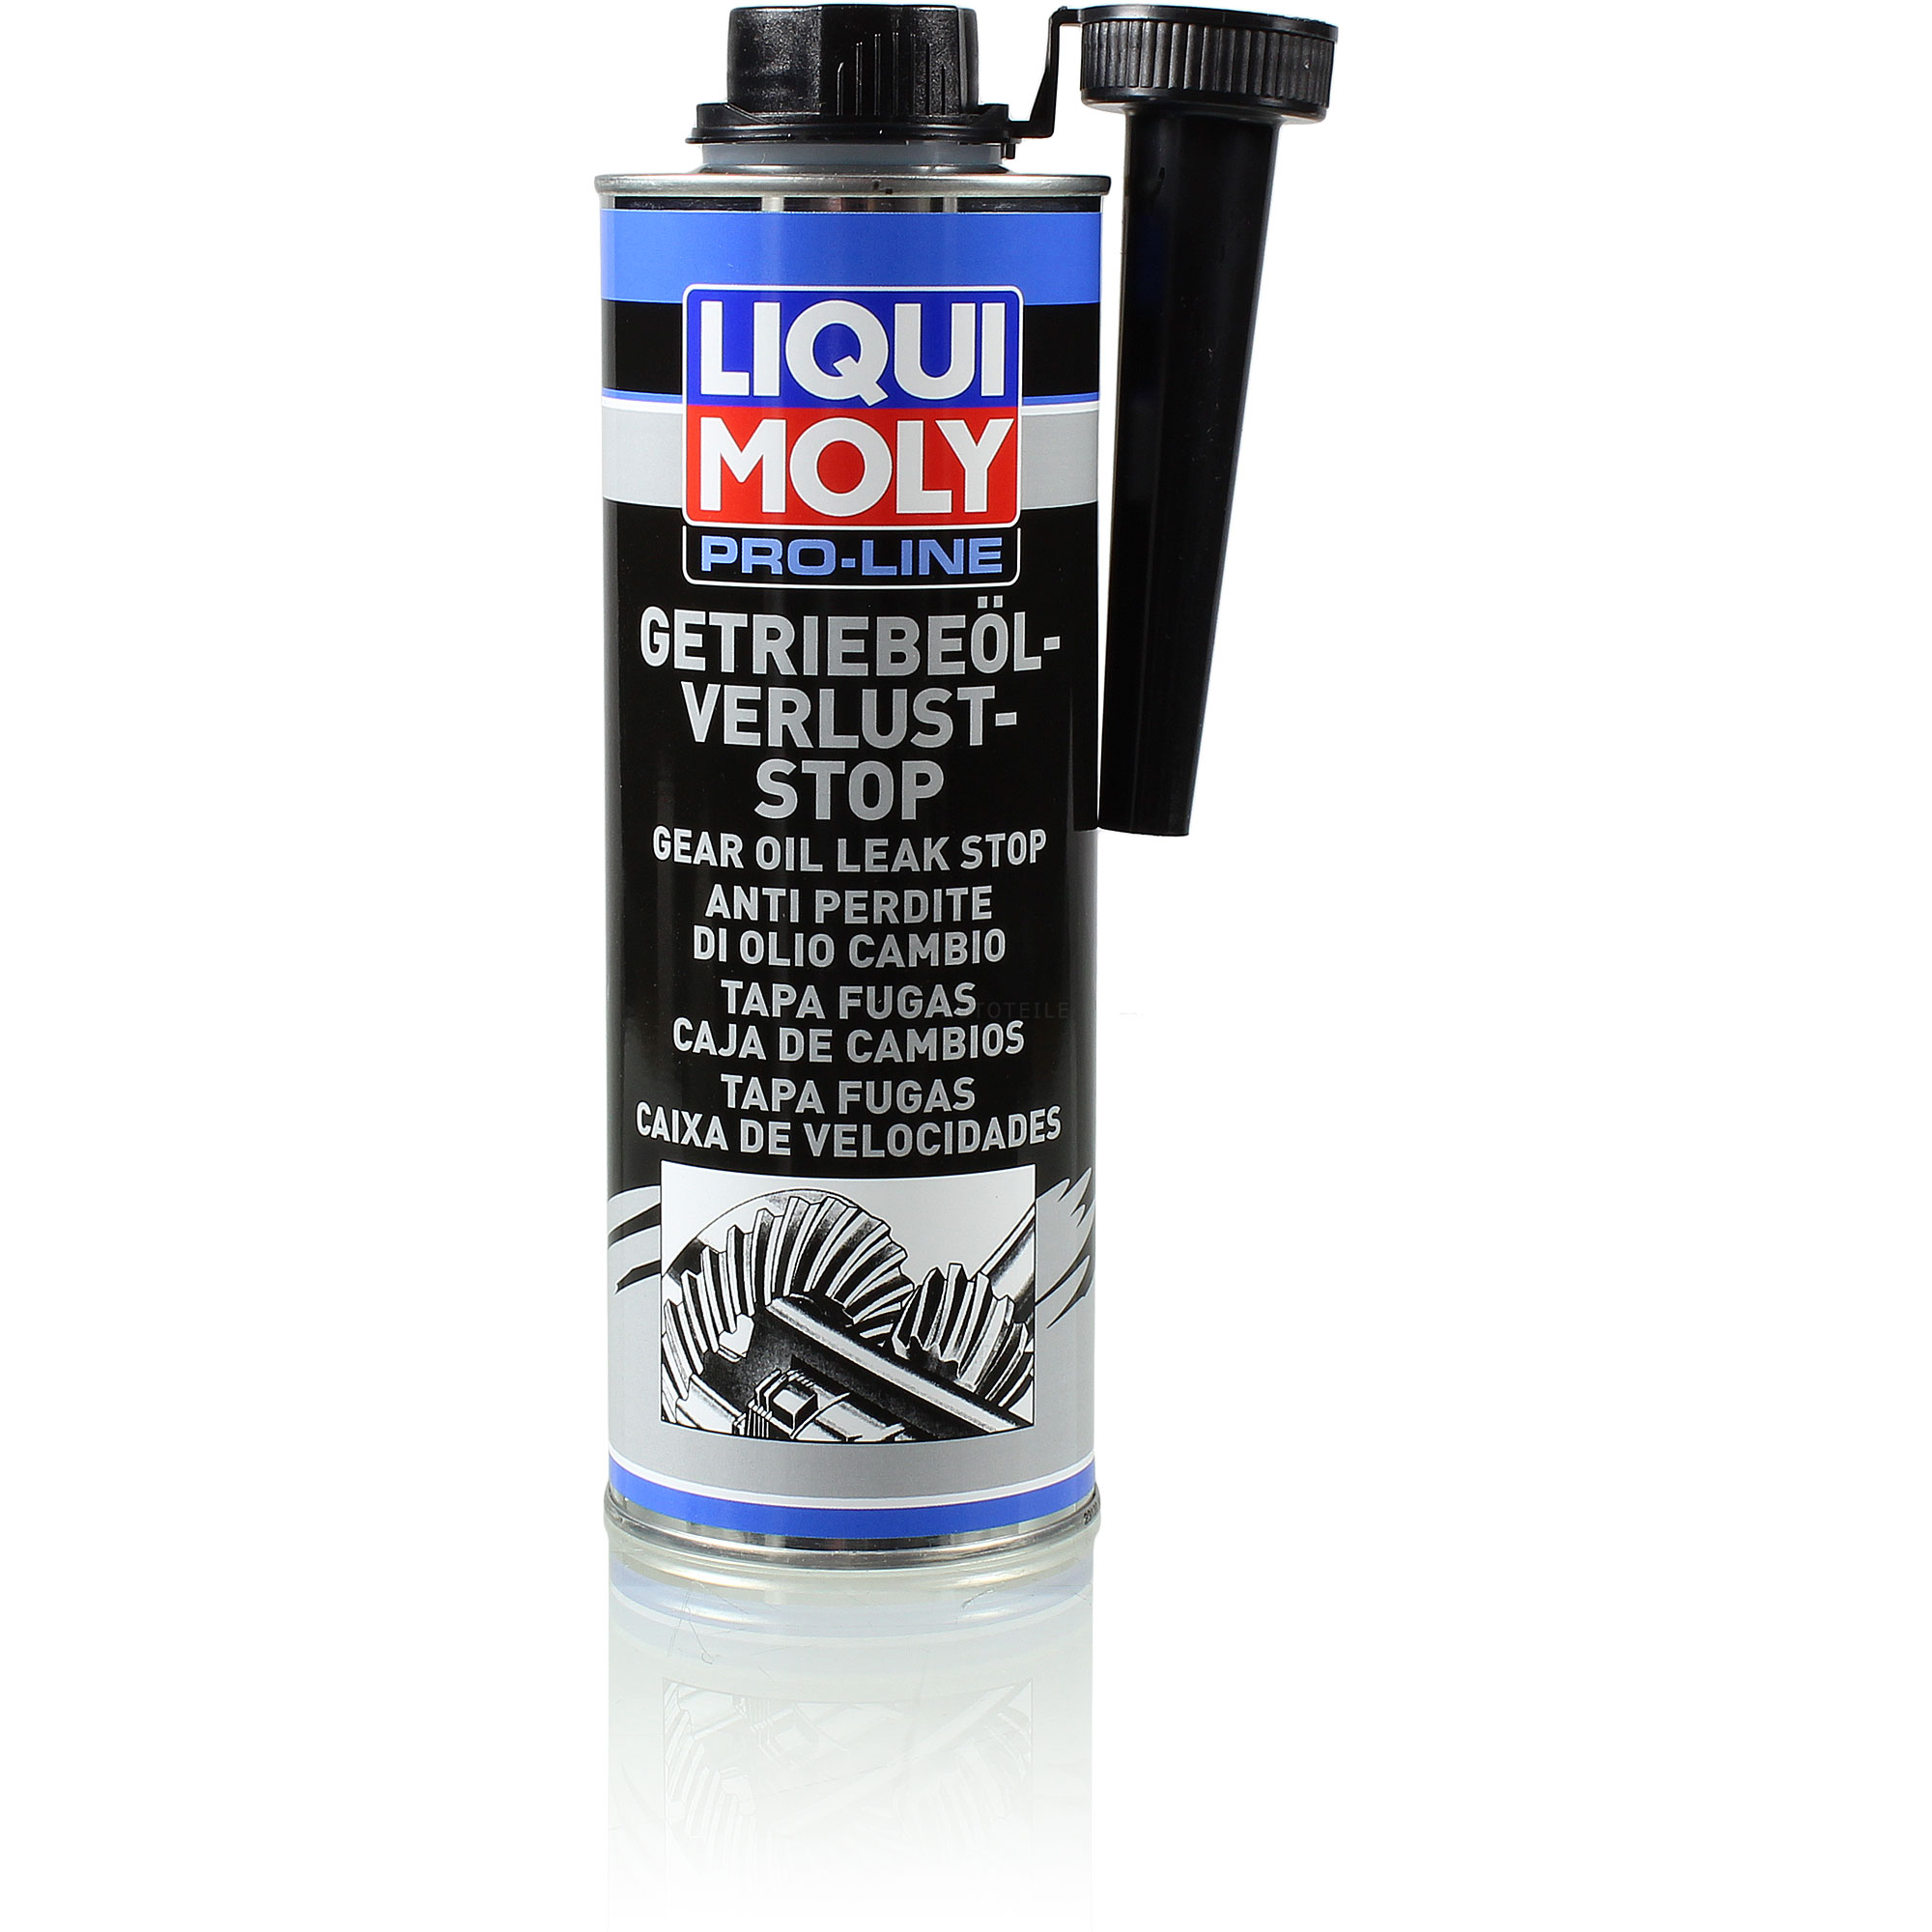 original liqui moly 5199 pro line getriebe l verlust stop. Black Bedroom Furniture Sets. Home Design Ideas